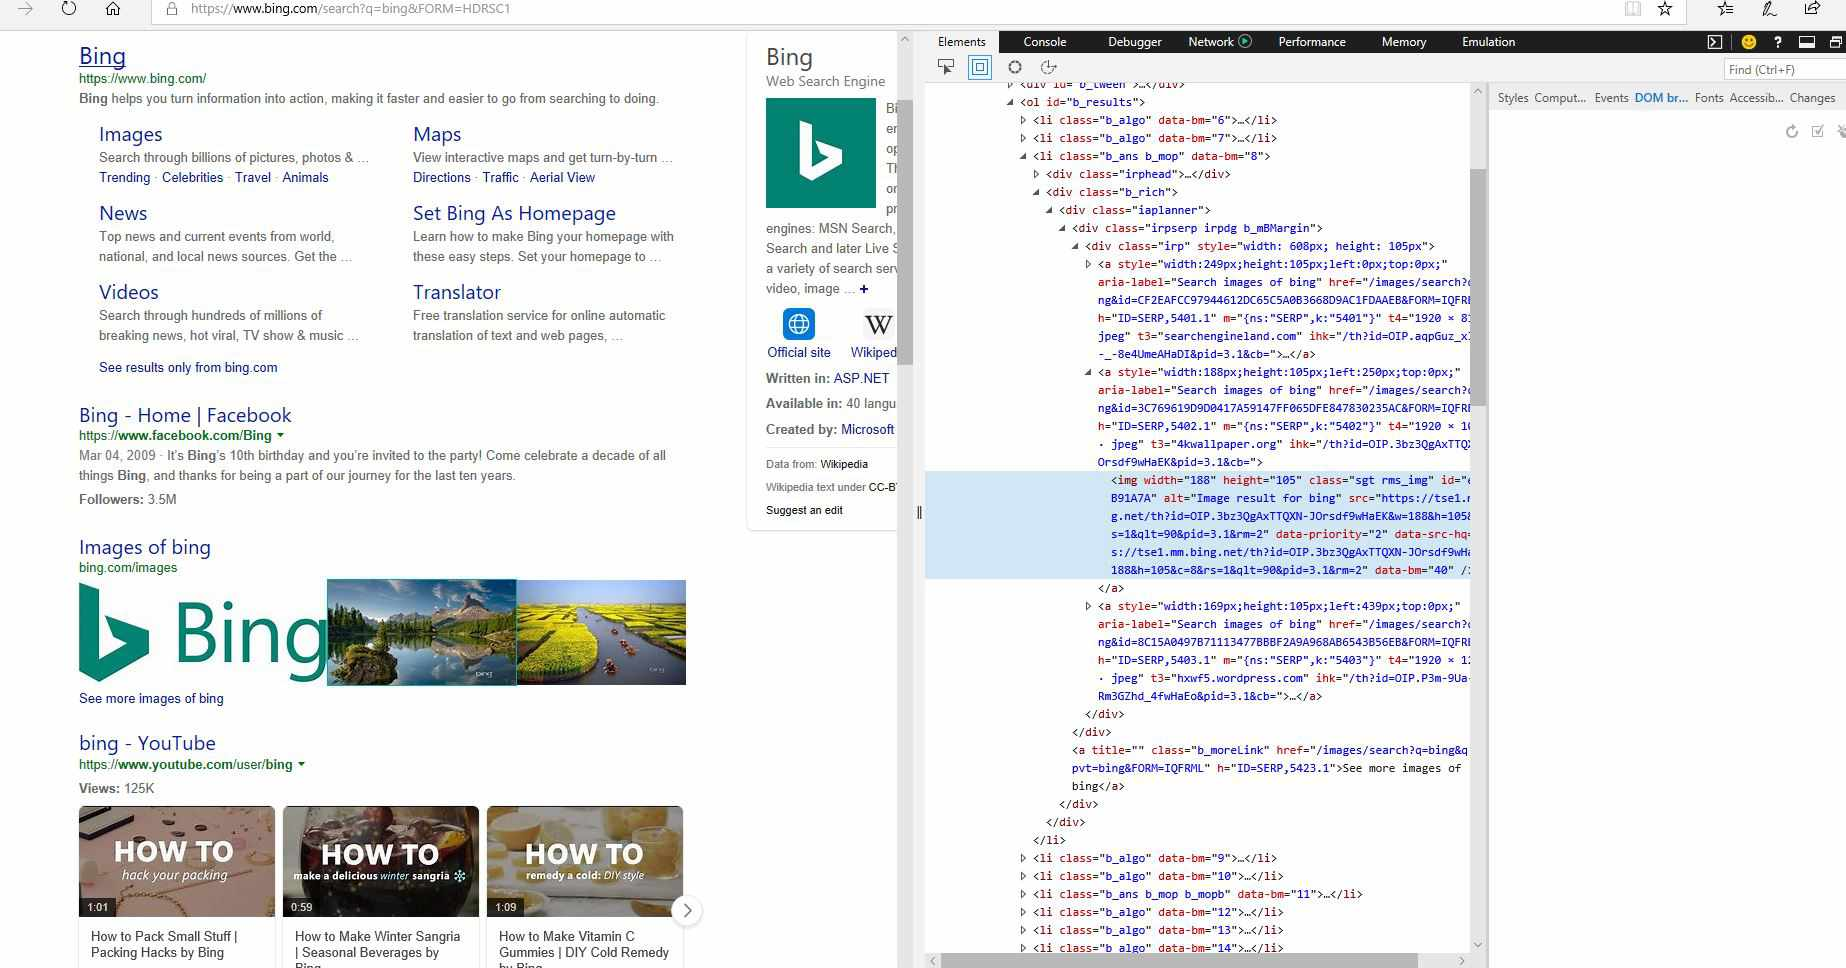 How to Copy an Image's URL in Microsoft Edge